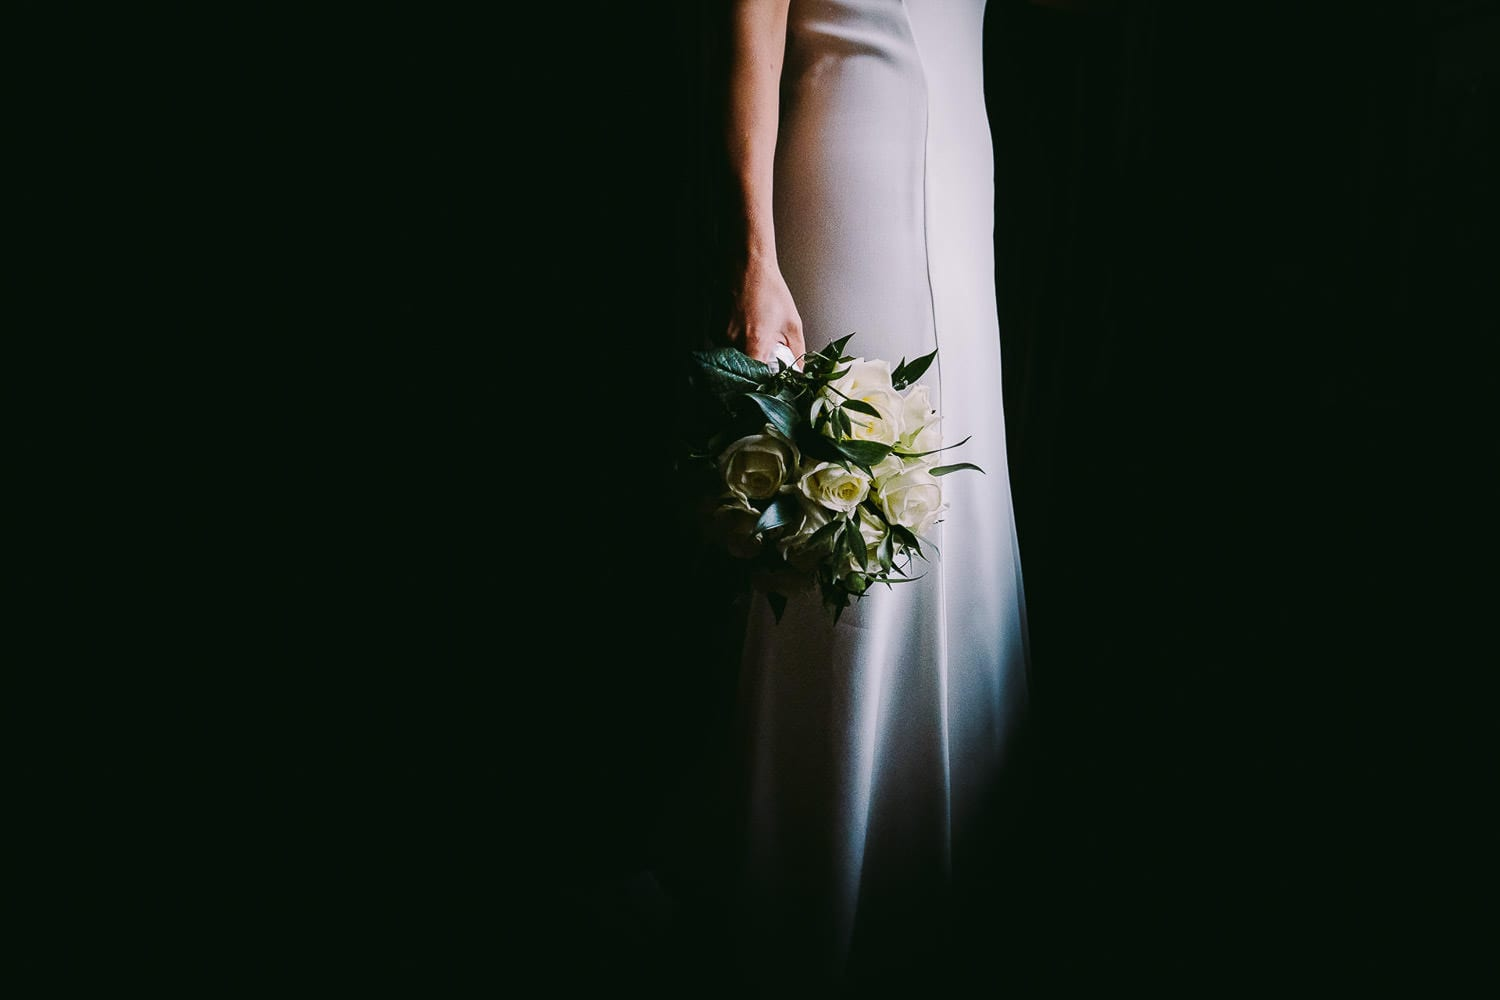 Bride holding her bouquet stood in front of window with background in darkness